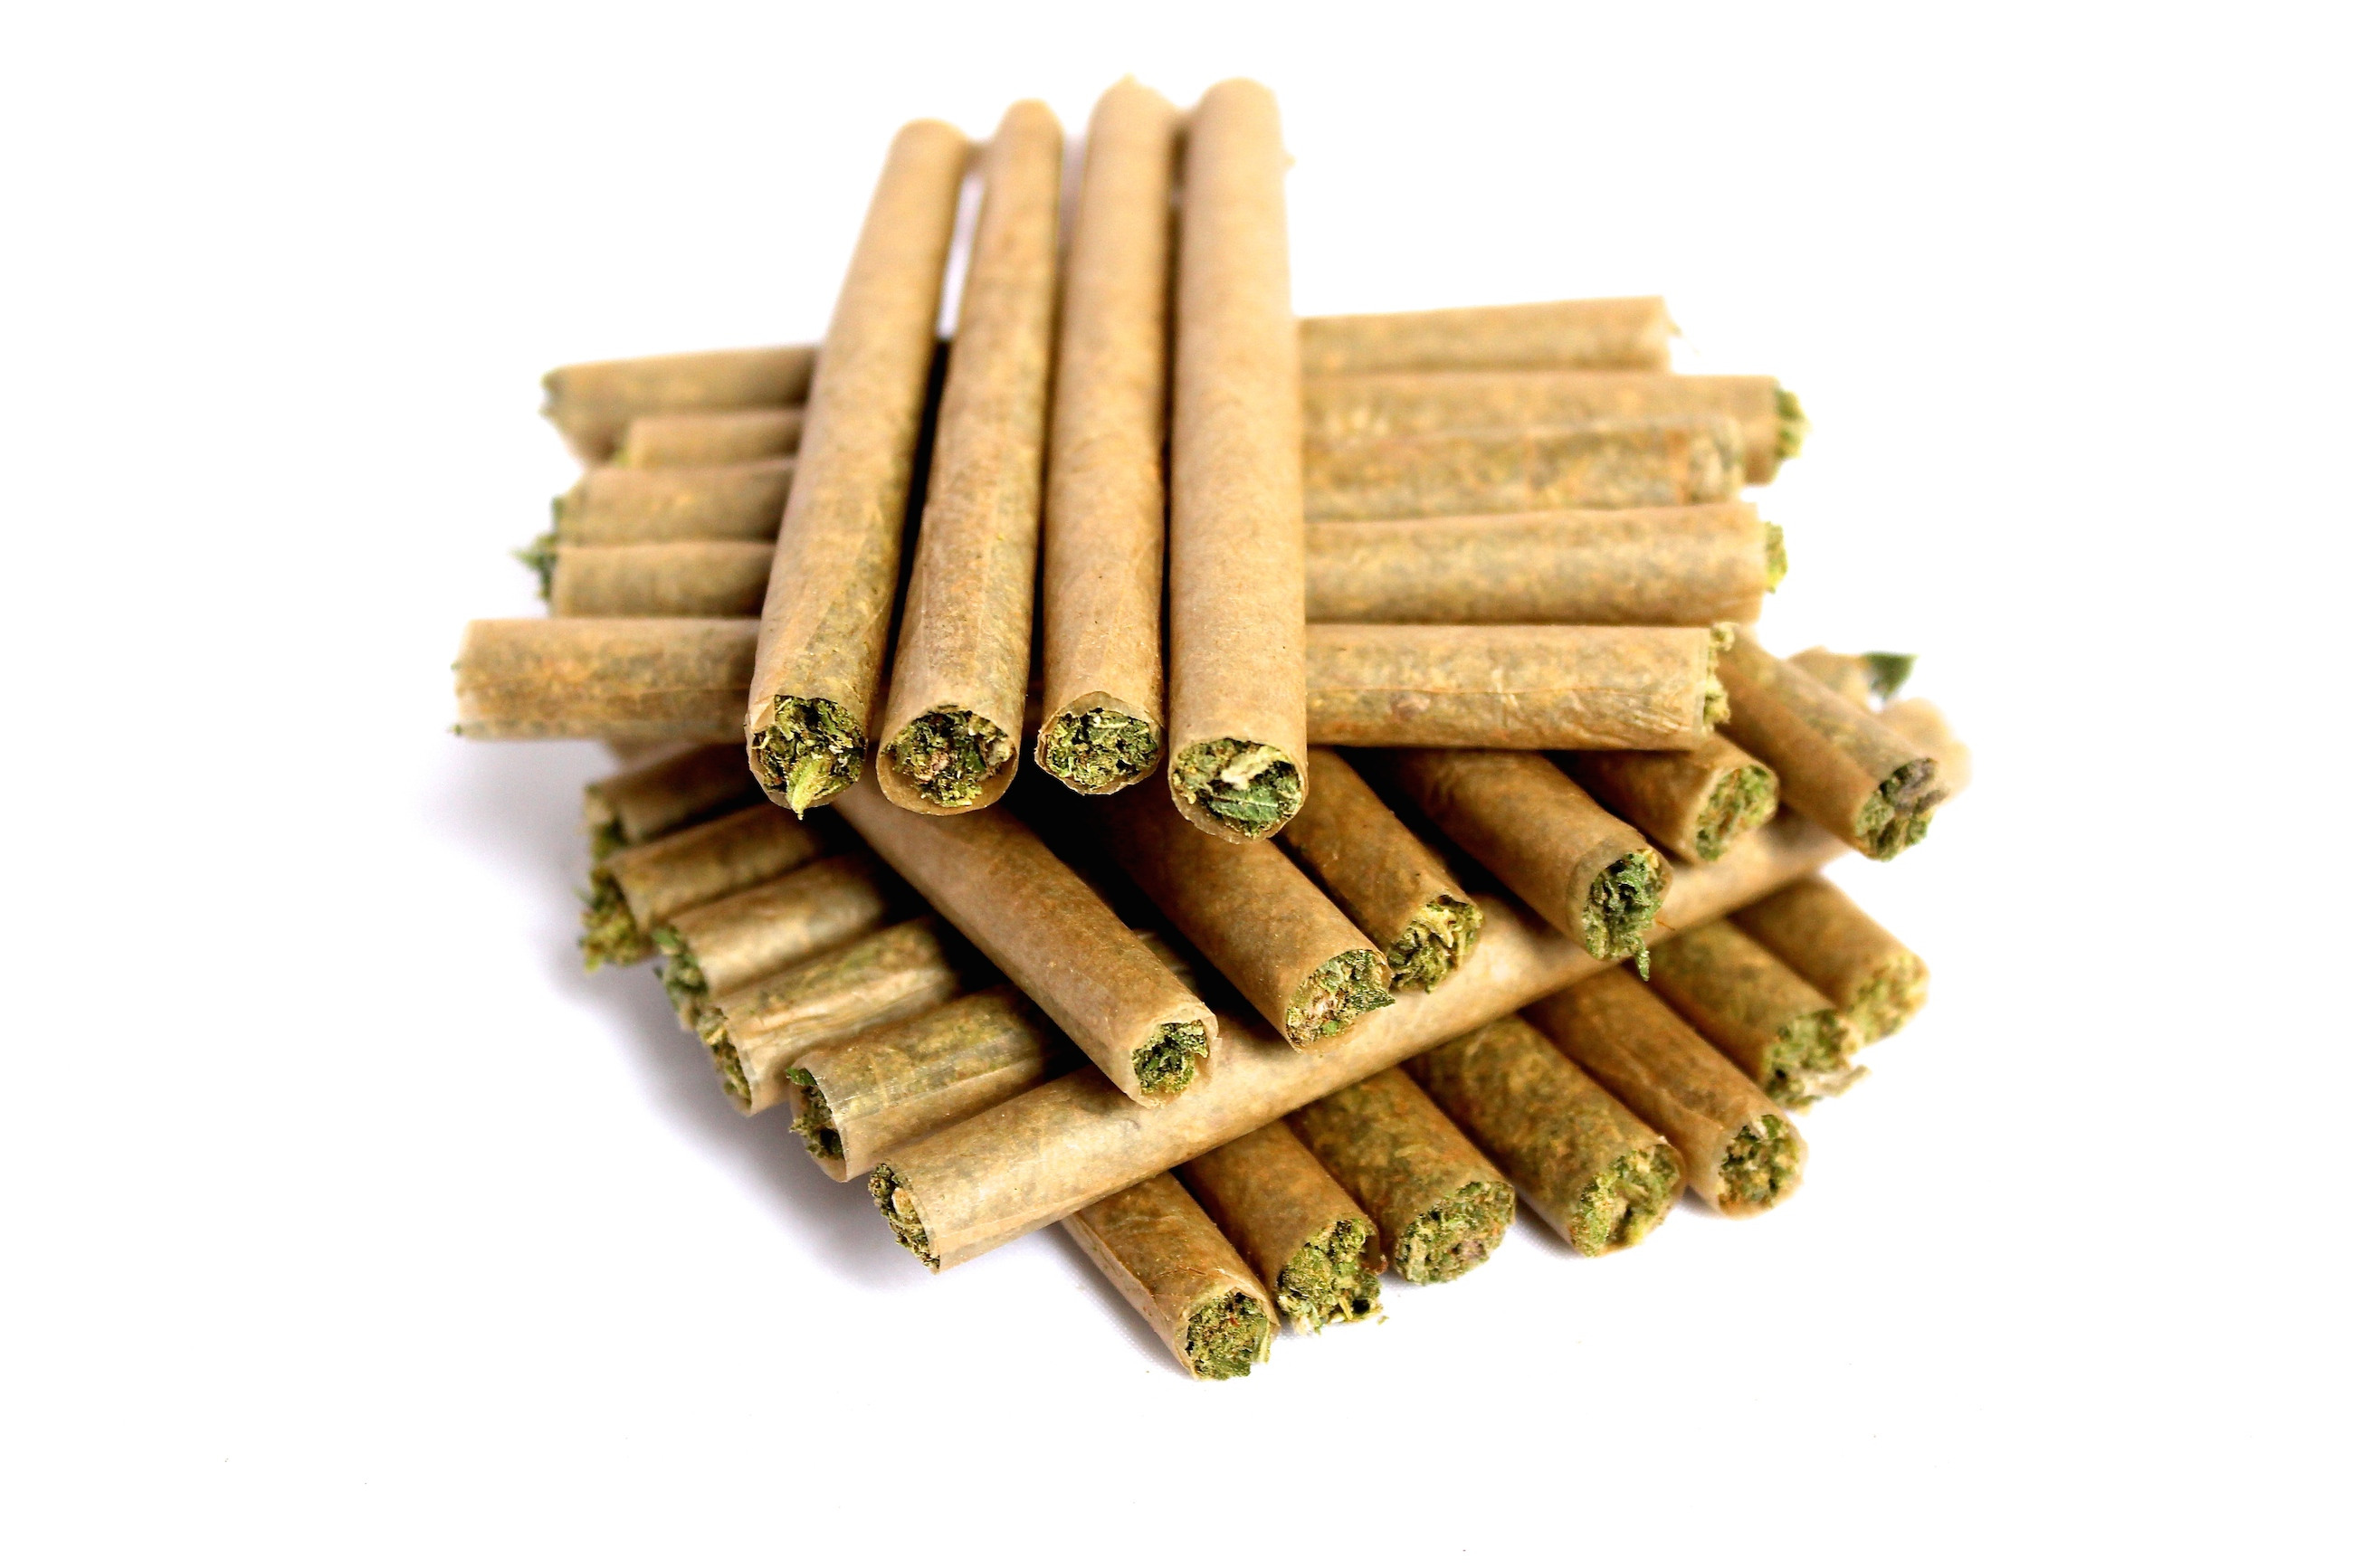 Dispensary Pre-rolled joints